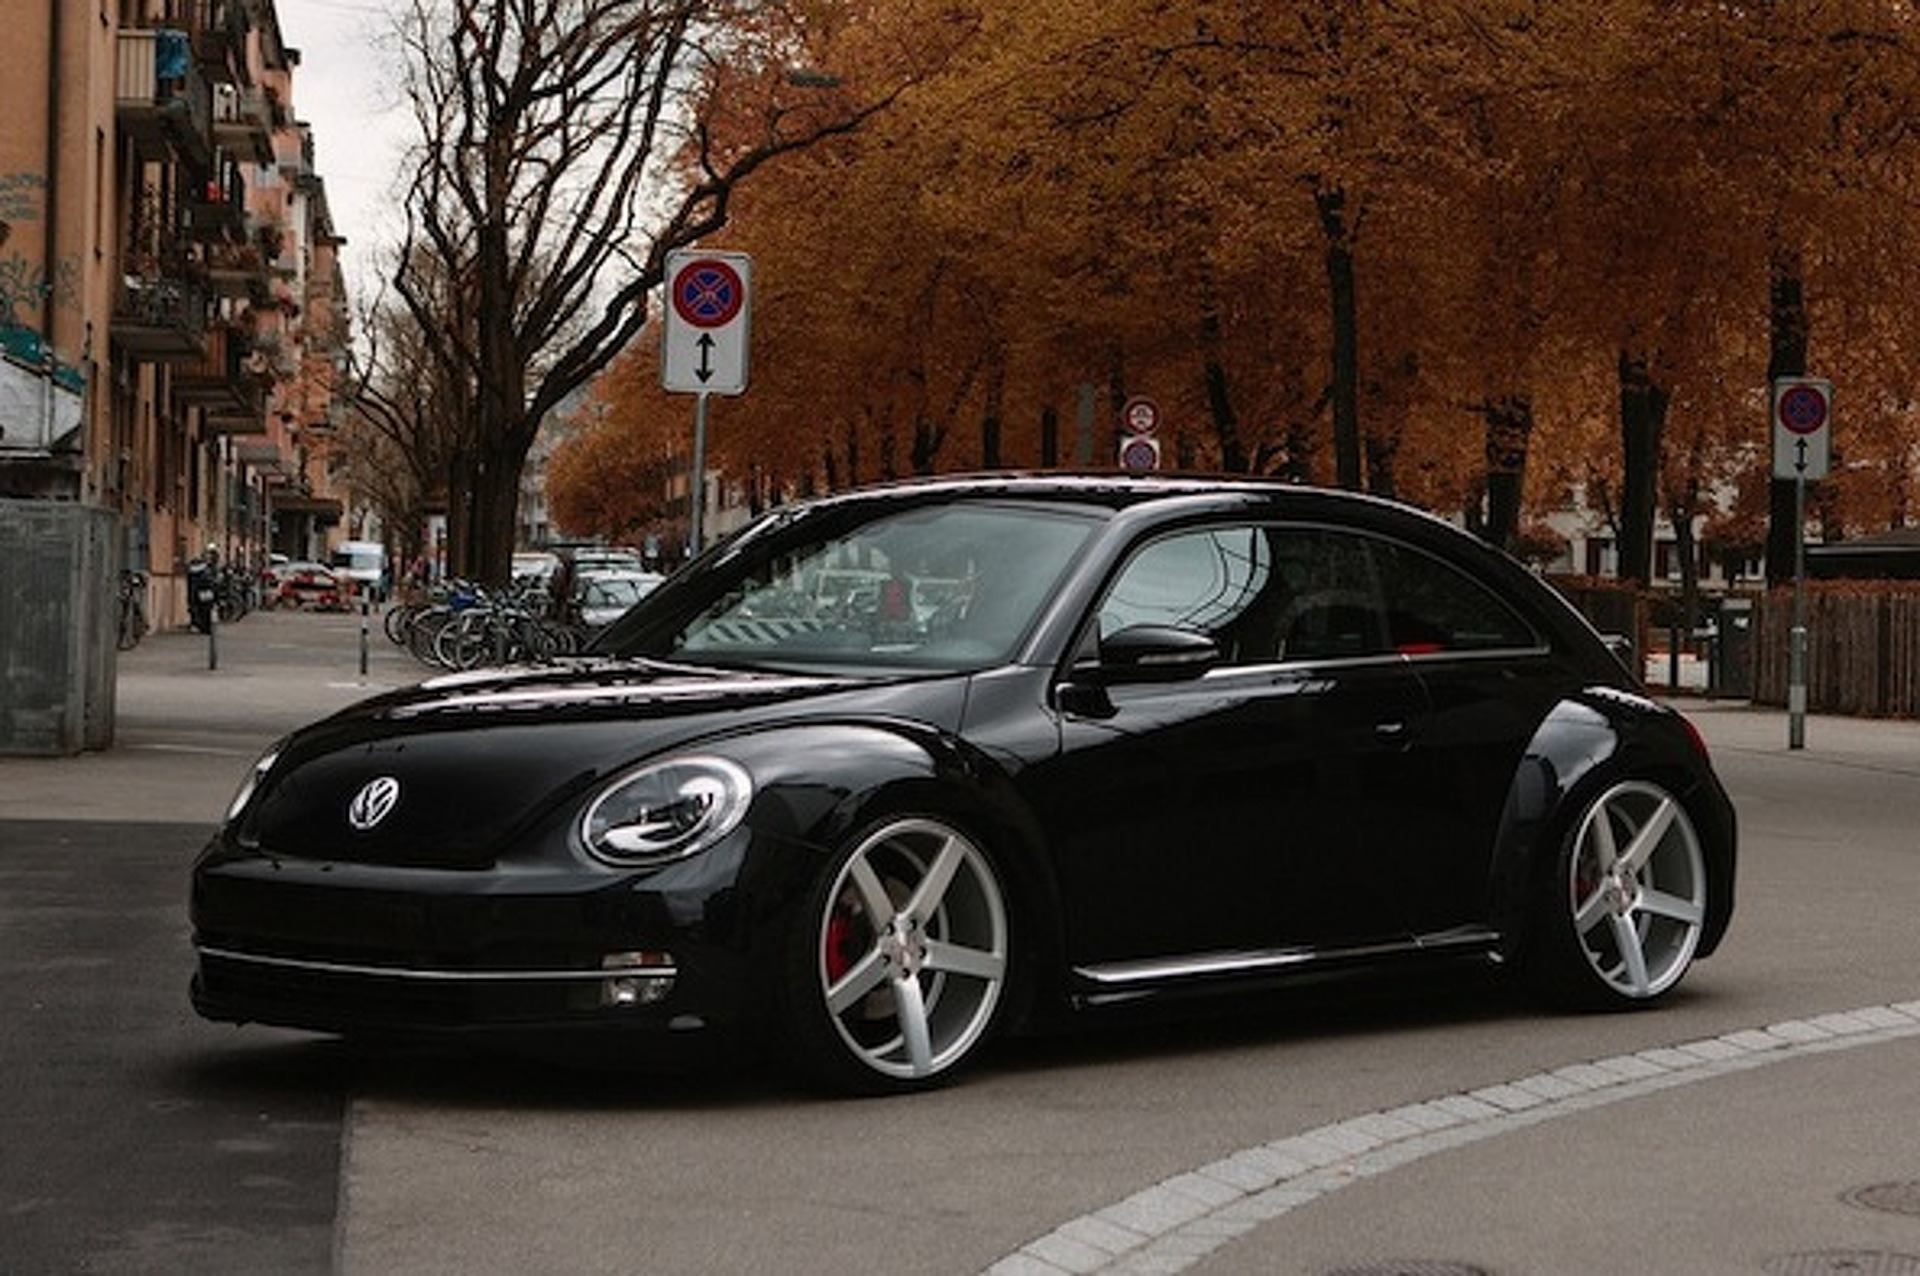 Slammed Volkswagen Beetle Riding Hot on Vossen Wheels